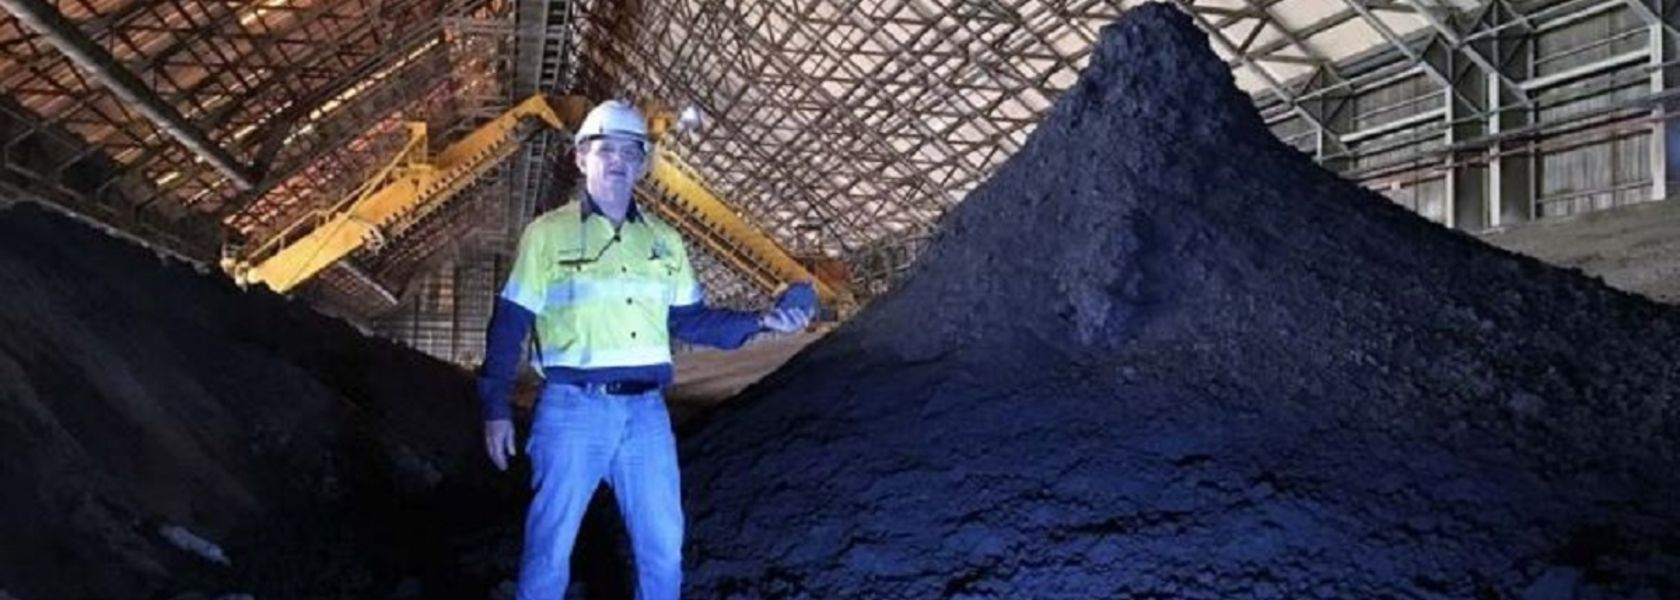 Hydraulic zinc mining the focus at New Century